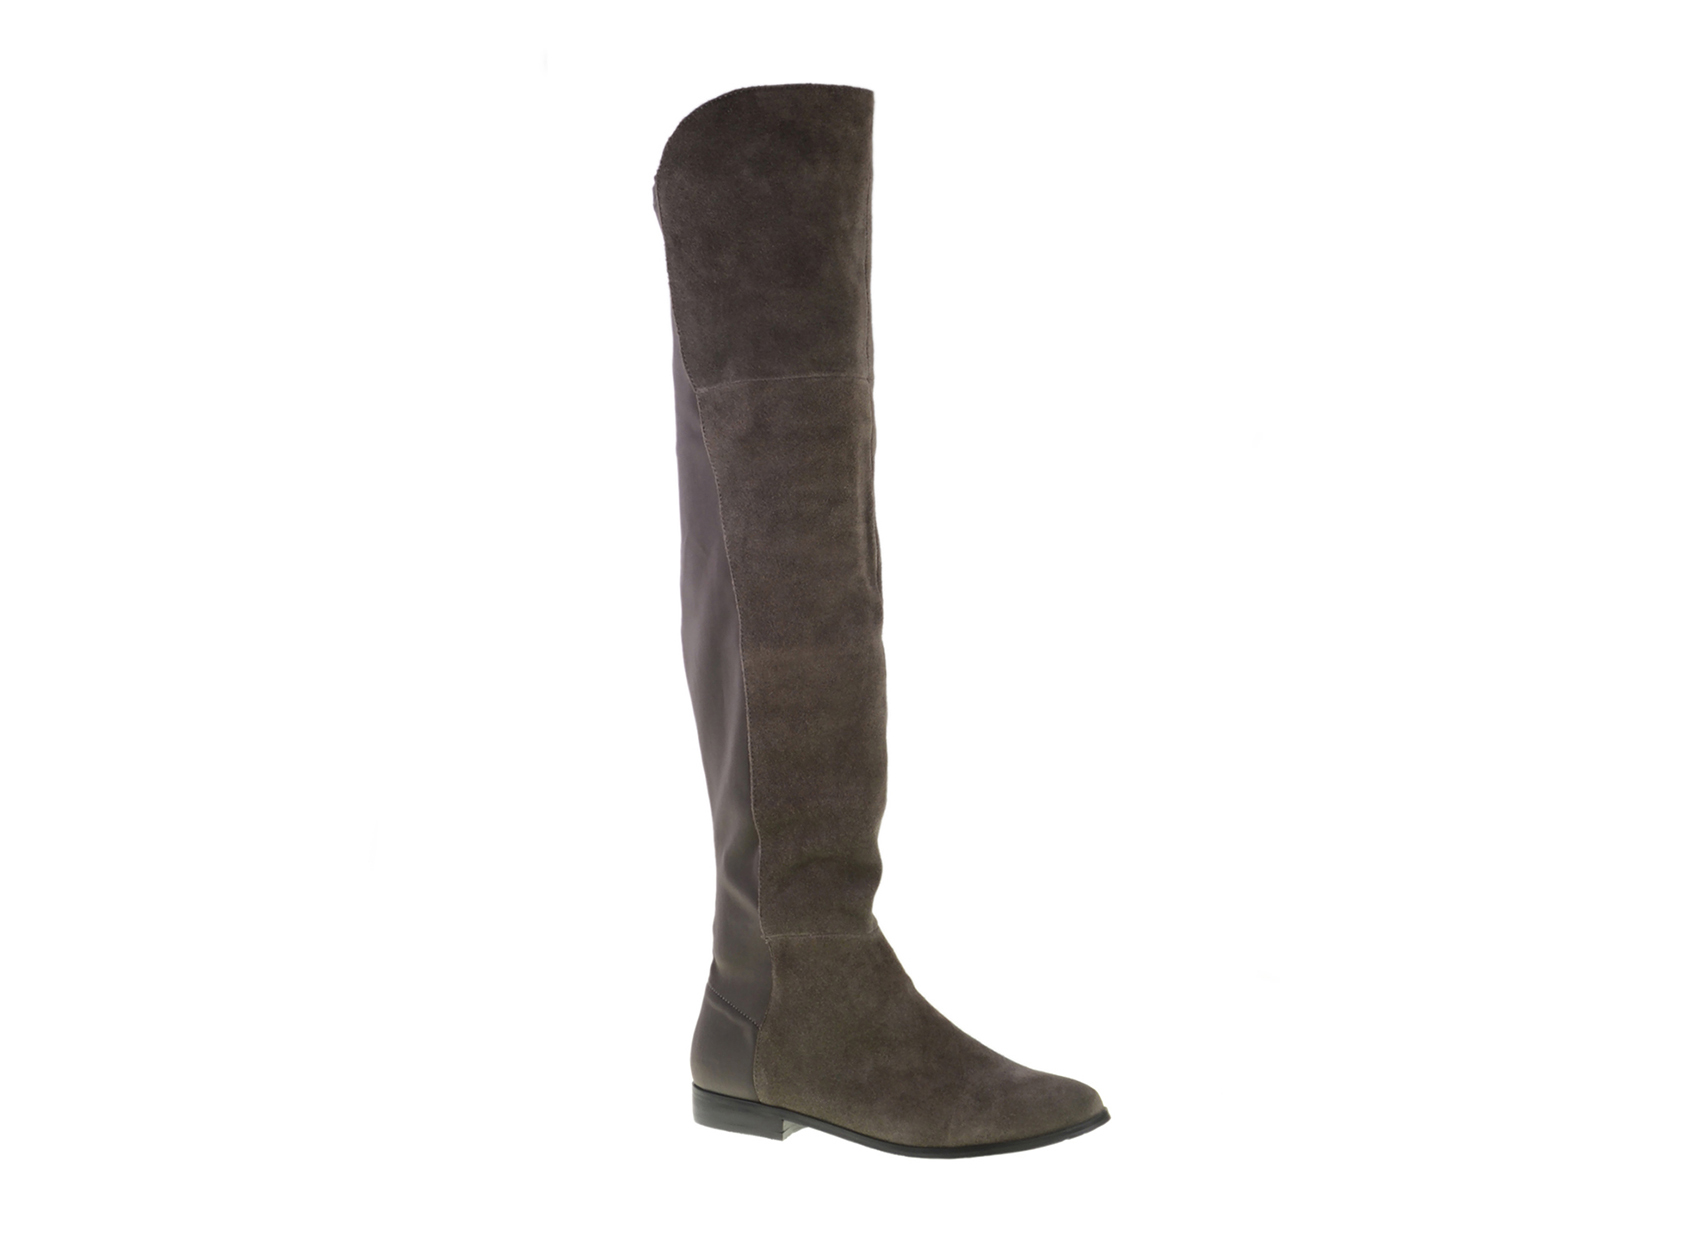 Chinese Laundry Riley Suede Over the Knee Boots